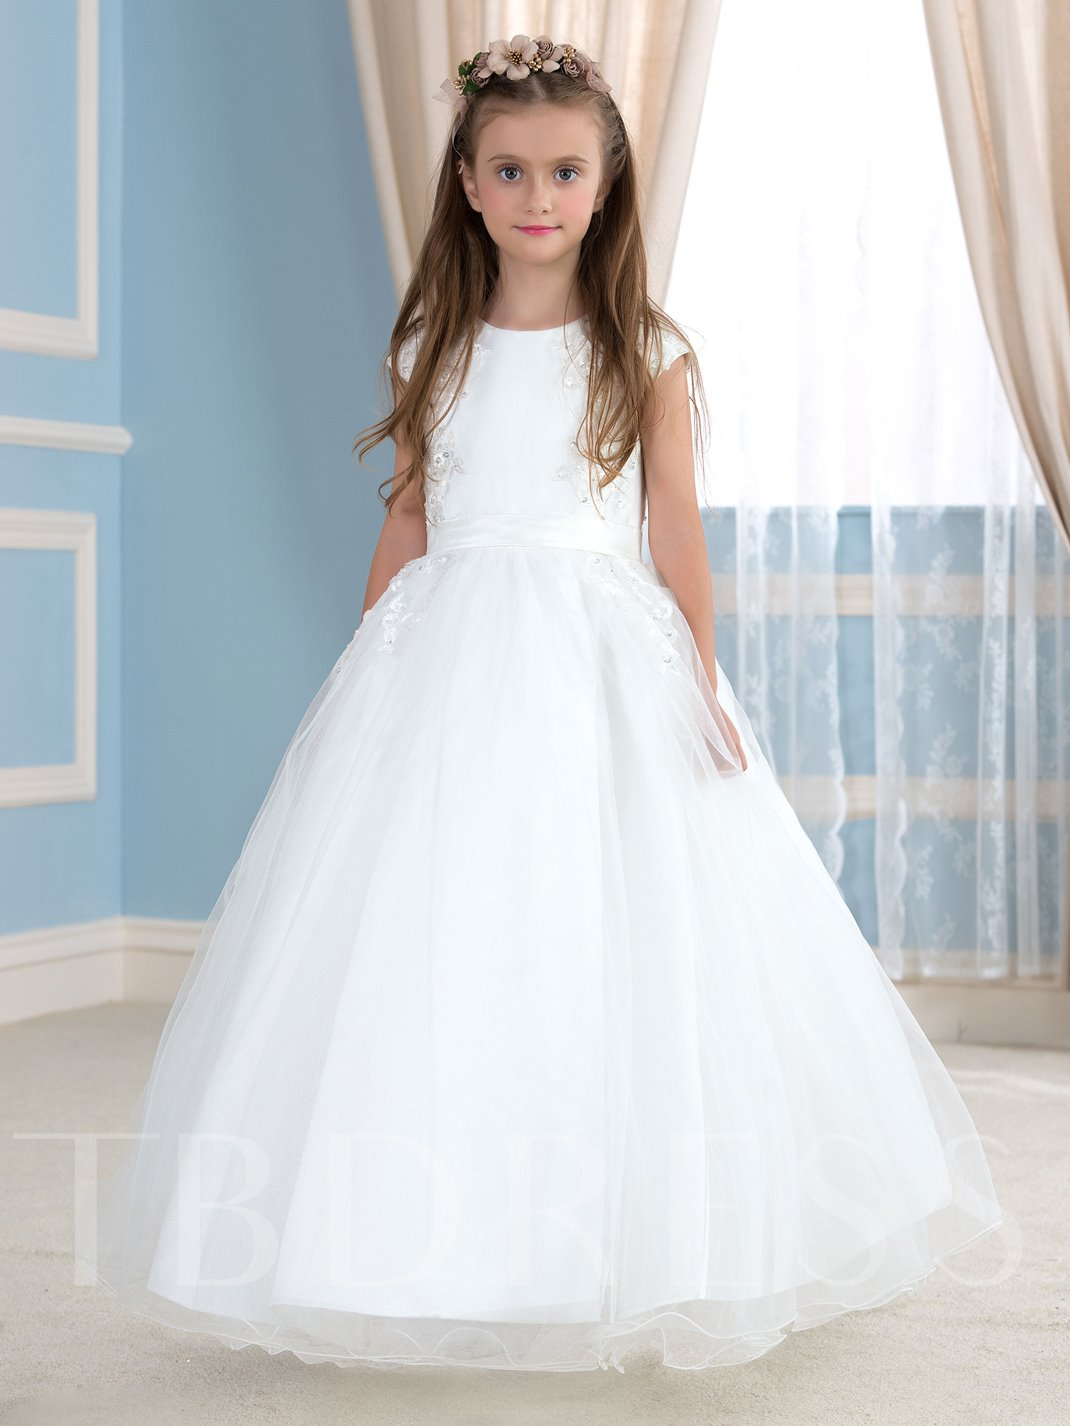 Lace Beading Tulle Ball Gown Flower Girl Dress - Tbdress.com